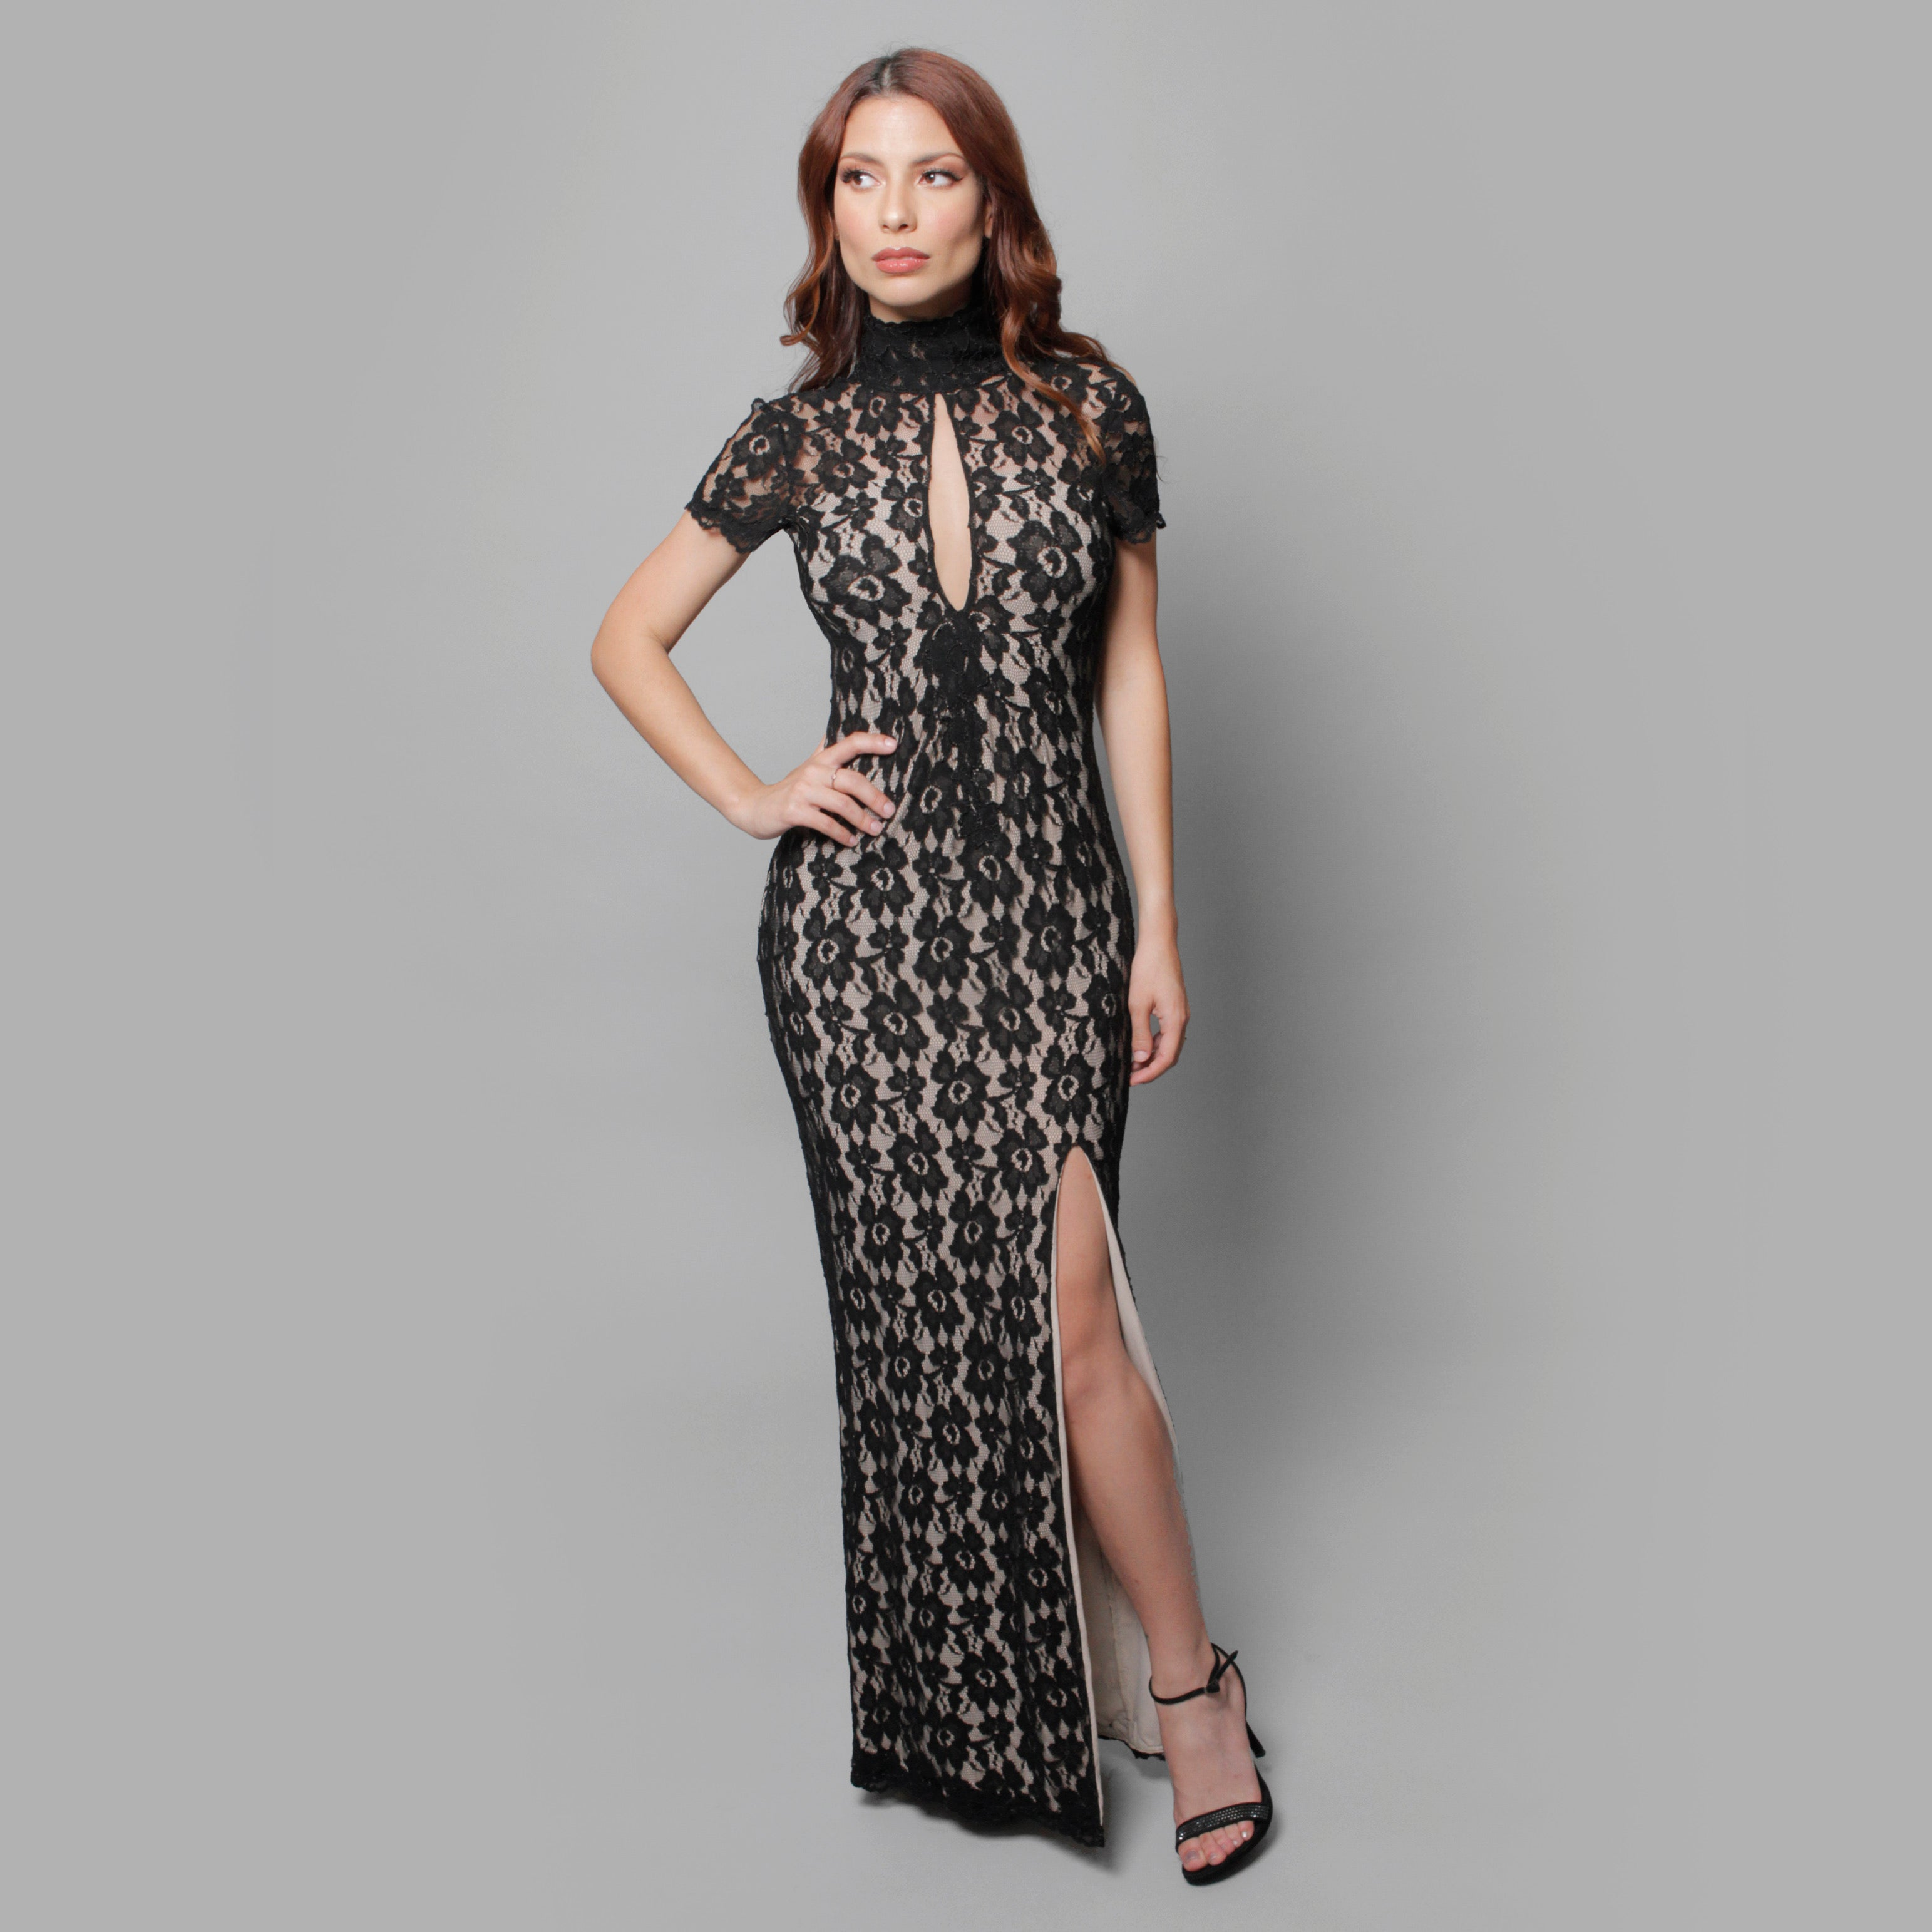 The Noemi Dress - Claudio Milano couture